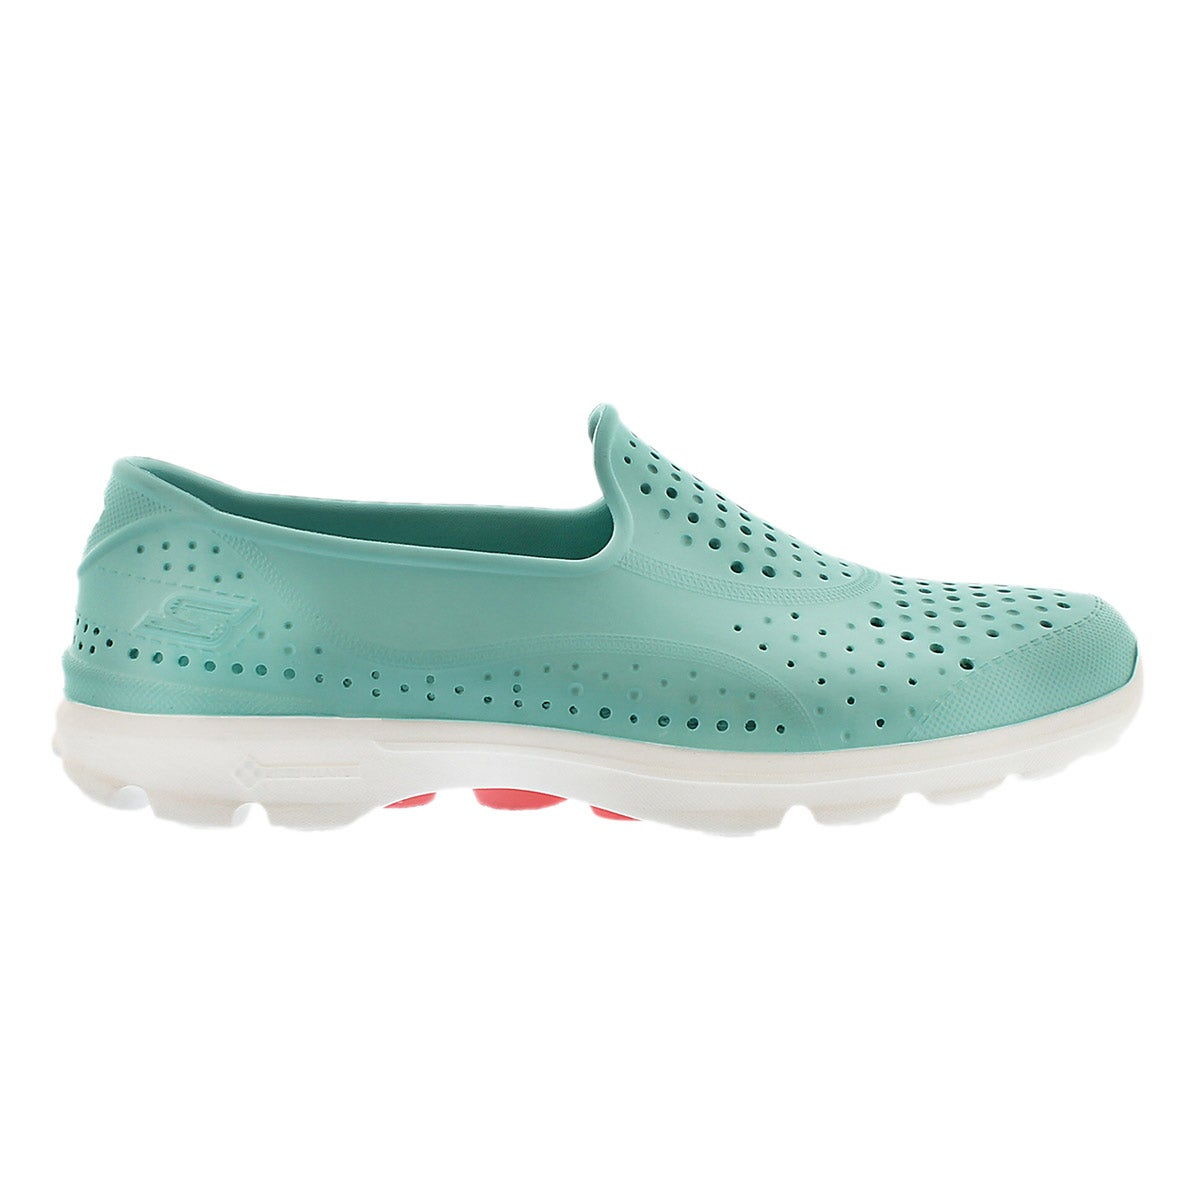 Lds H2 GO mint waterproof slip on